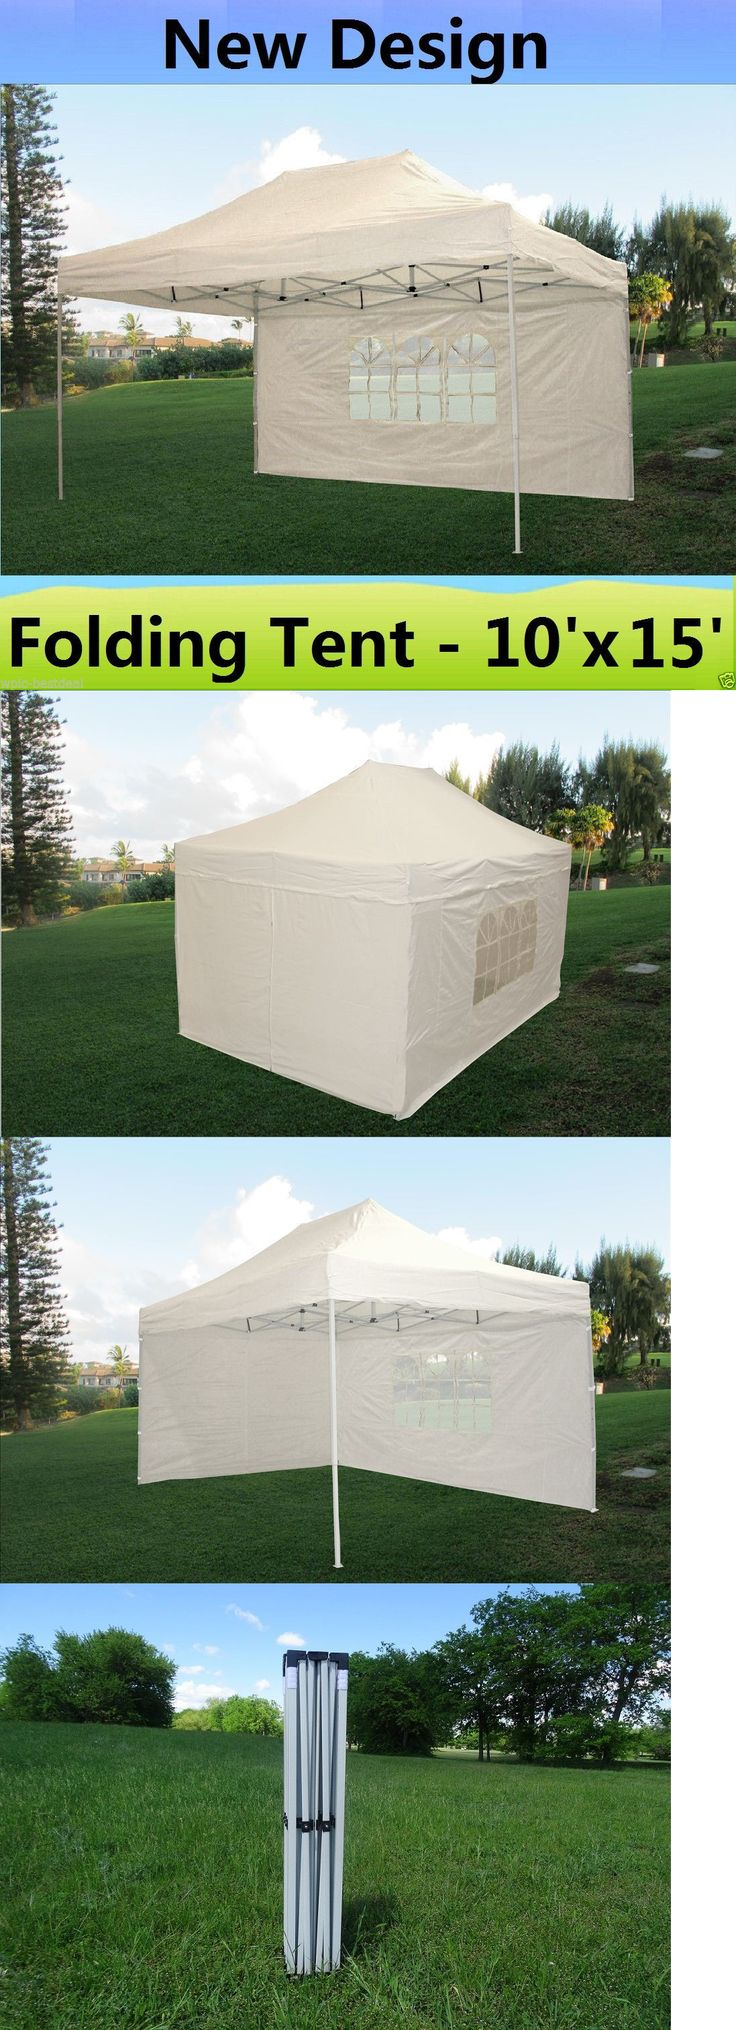 Awnings and Canopies 180992: 10 X 15 Pop Up Canopy Party Tent Gazebo Ez - White - E Model -> BUY IT NOW ONLY: $209.99 on eBay!